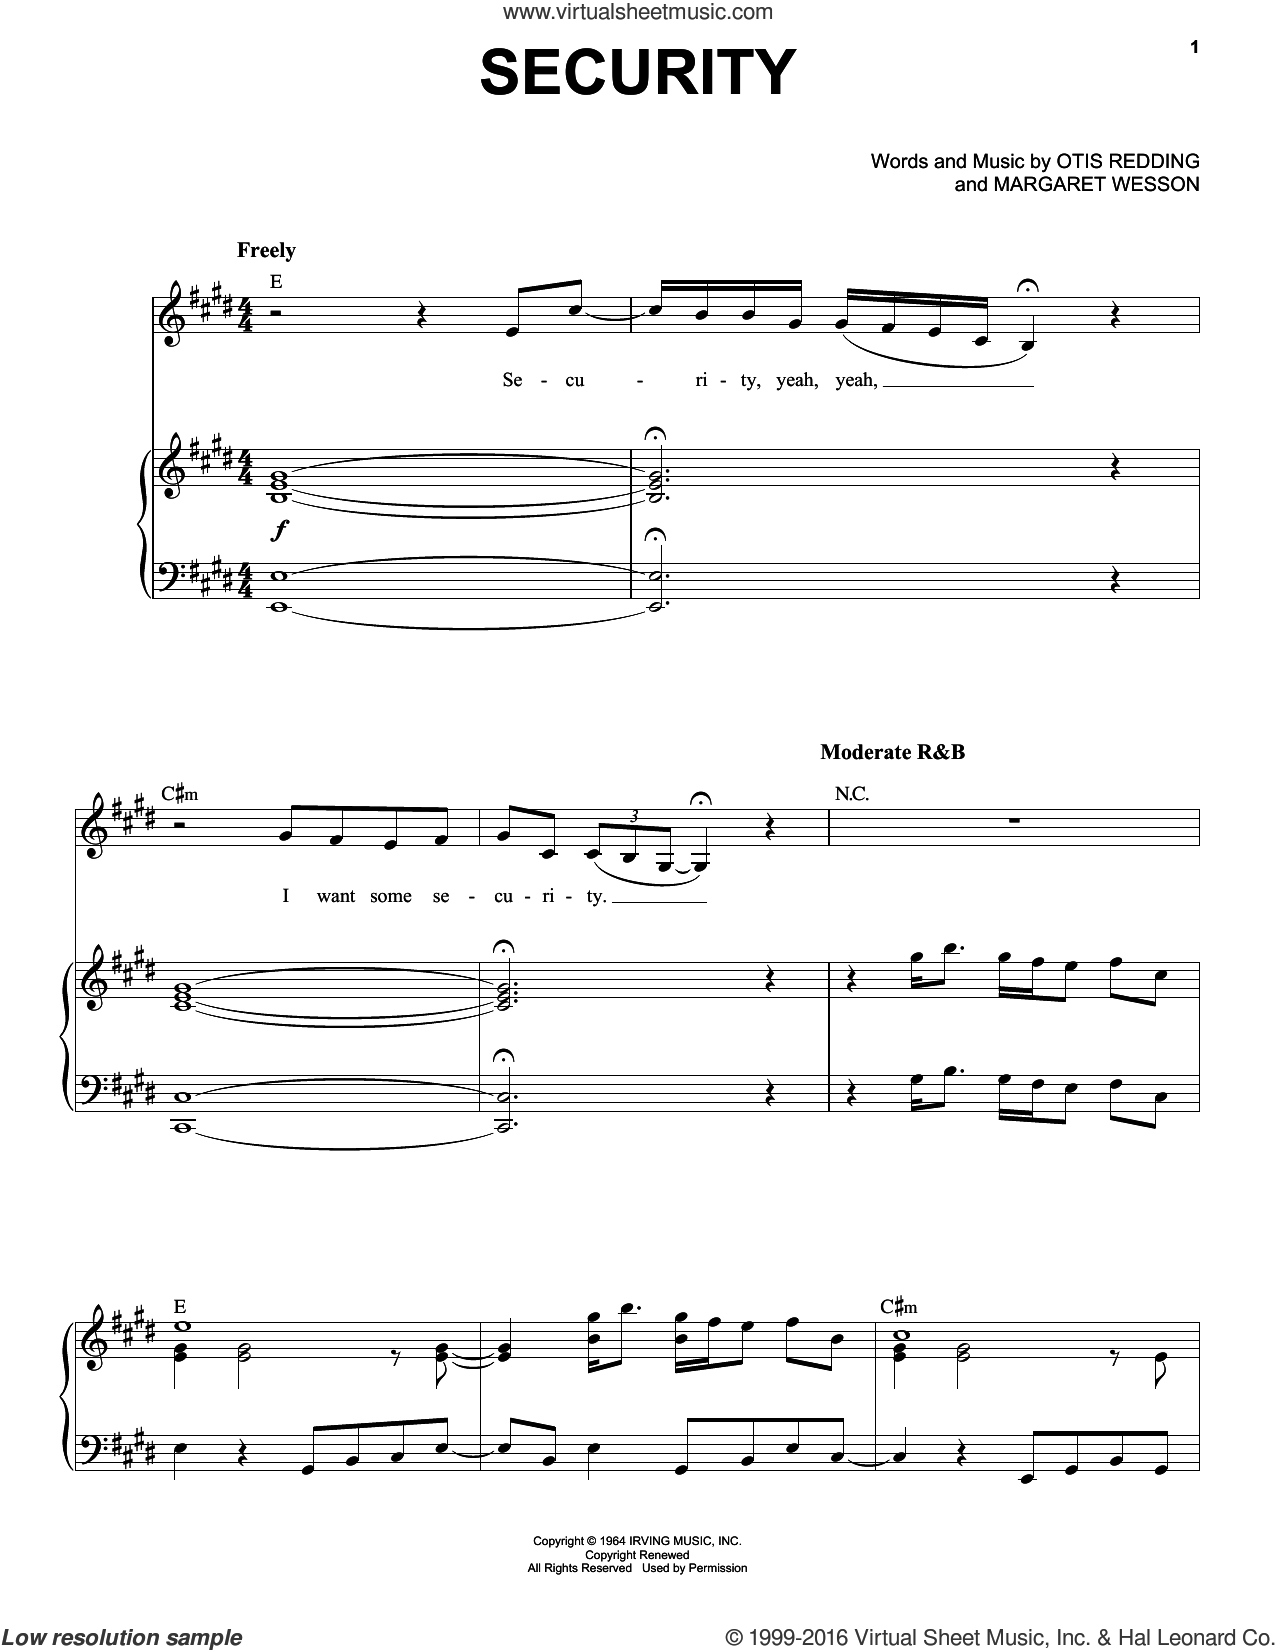 Security sheet music for voice and piano by Otis Redding